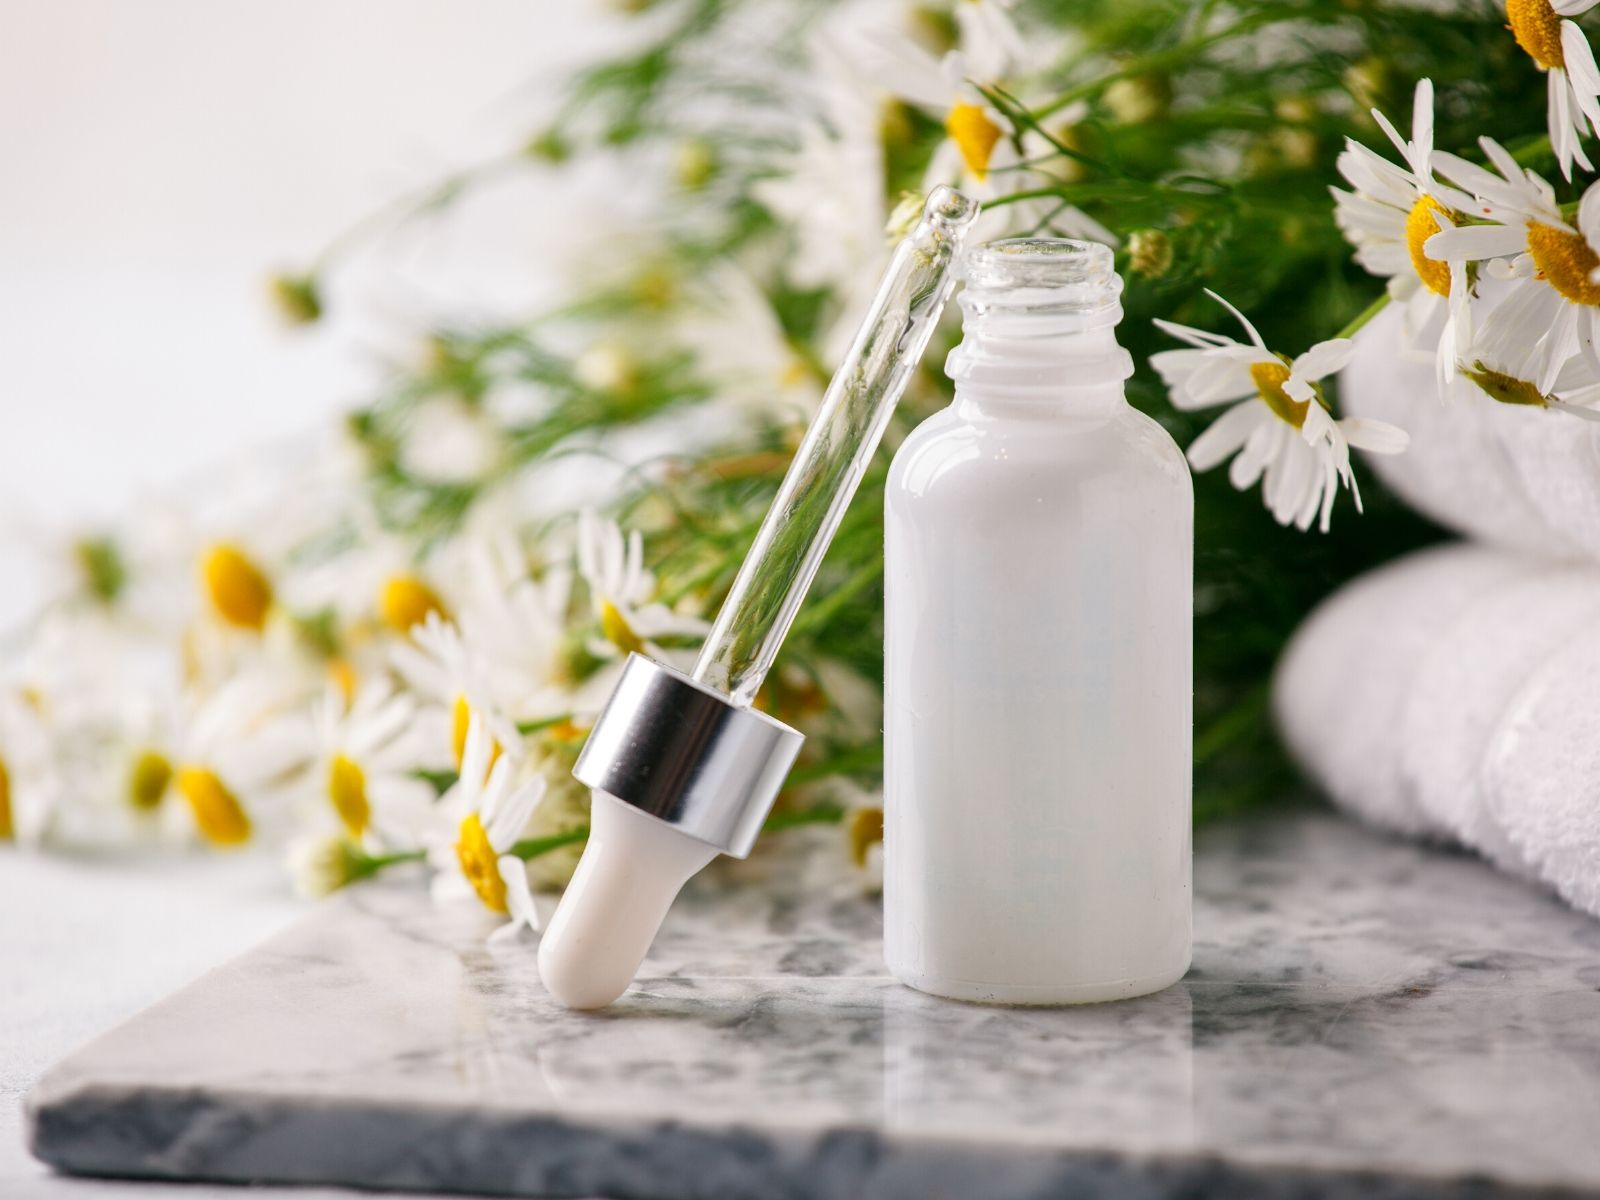 white essential oil bottle with flowers in the background.